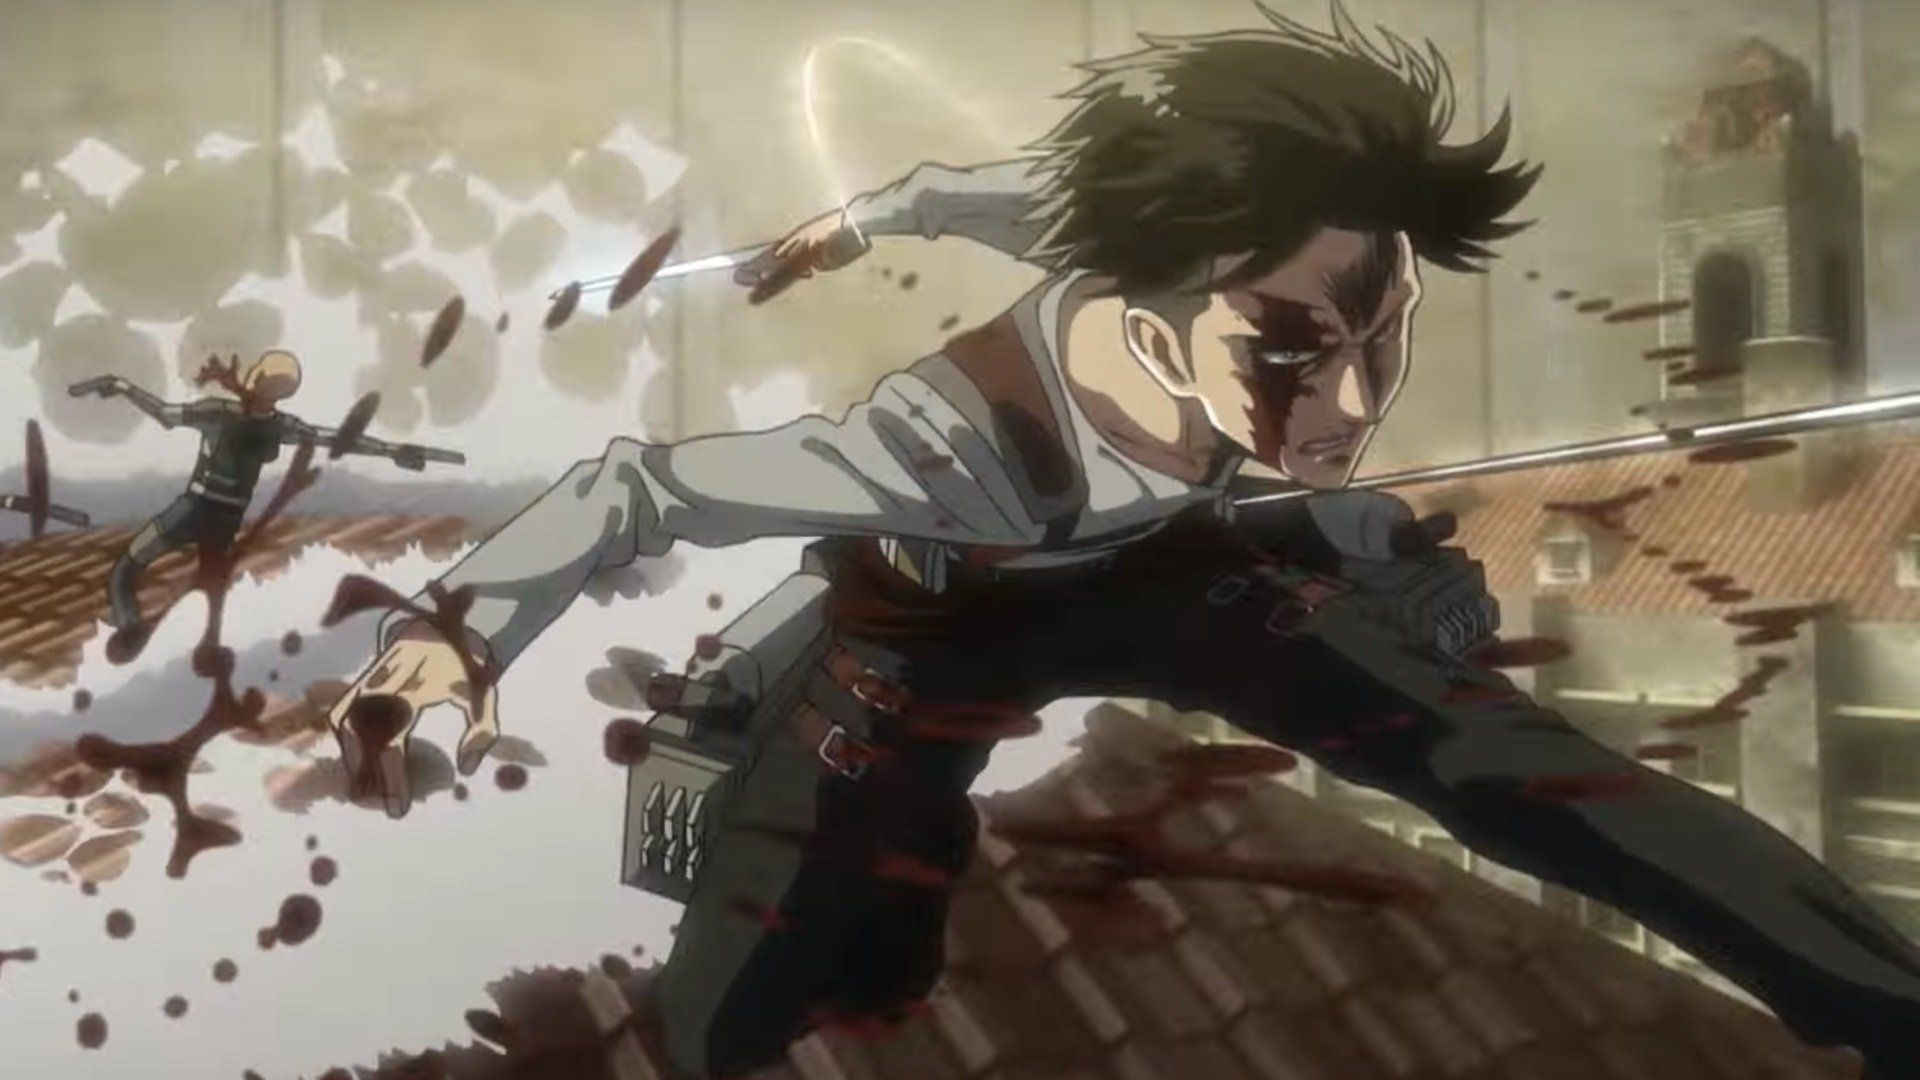 The wallpaper trend is going strong. Attack On Titan Aesthetic Wallpapers - Wallpaper Cave